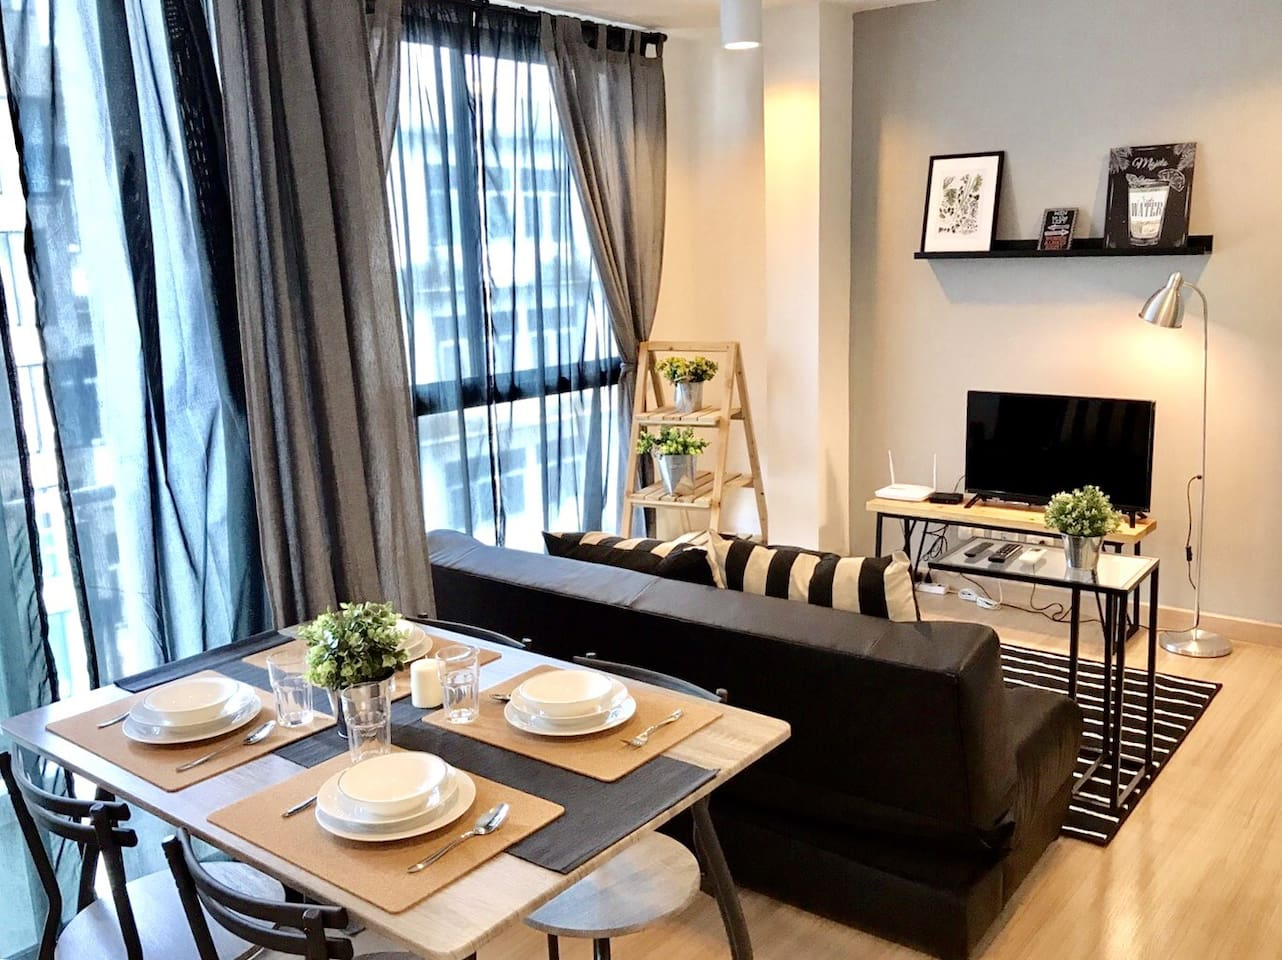 Living Room & Dining Table